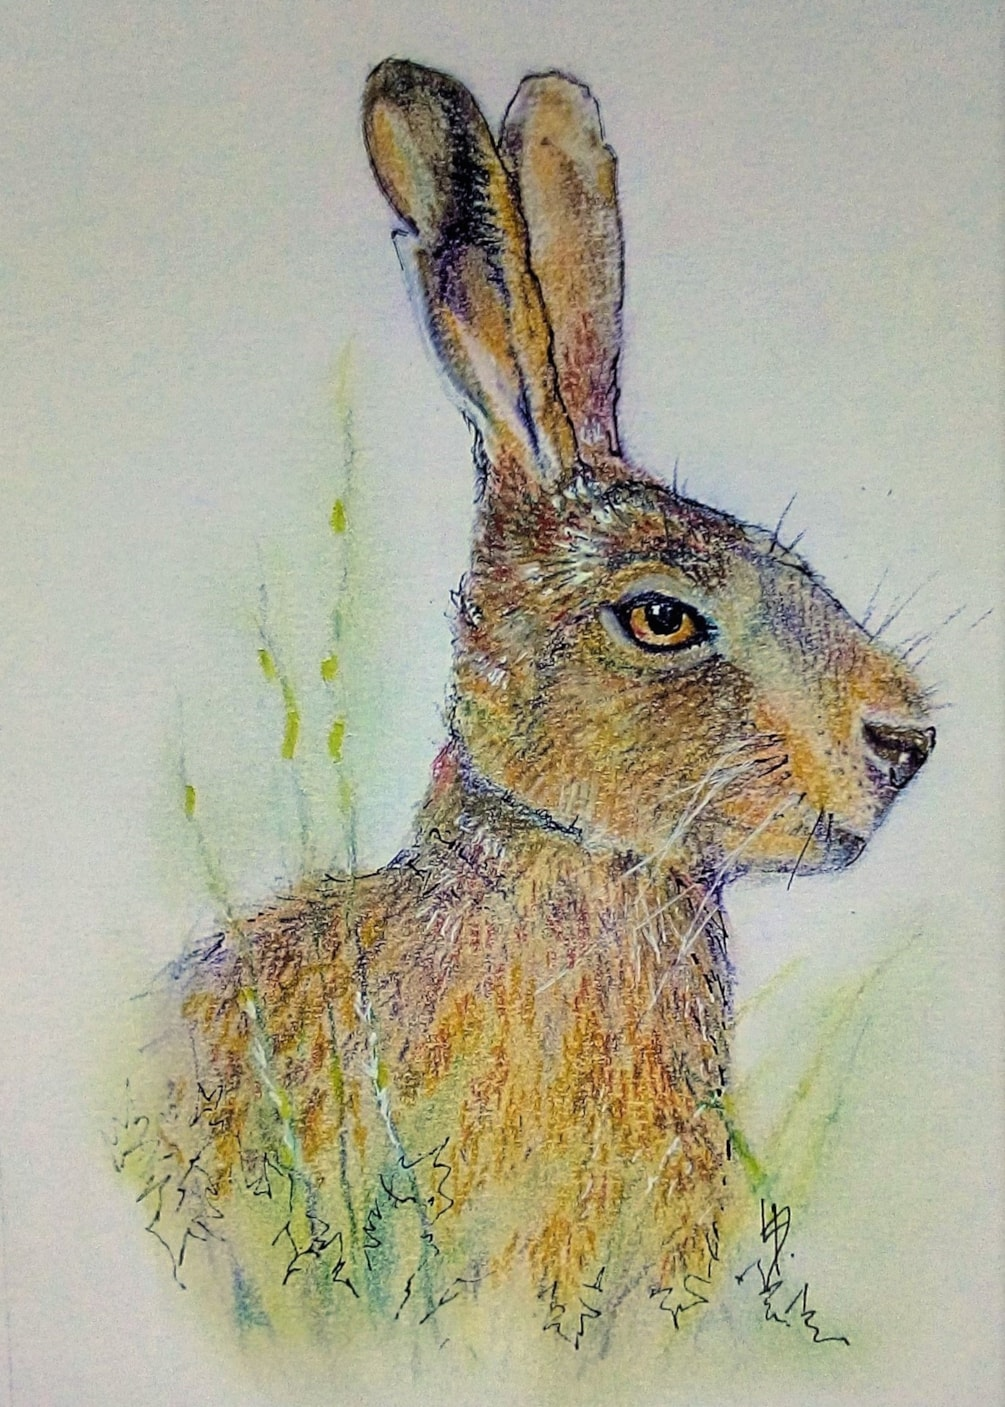 Hare today, gone tomorrow ...